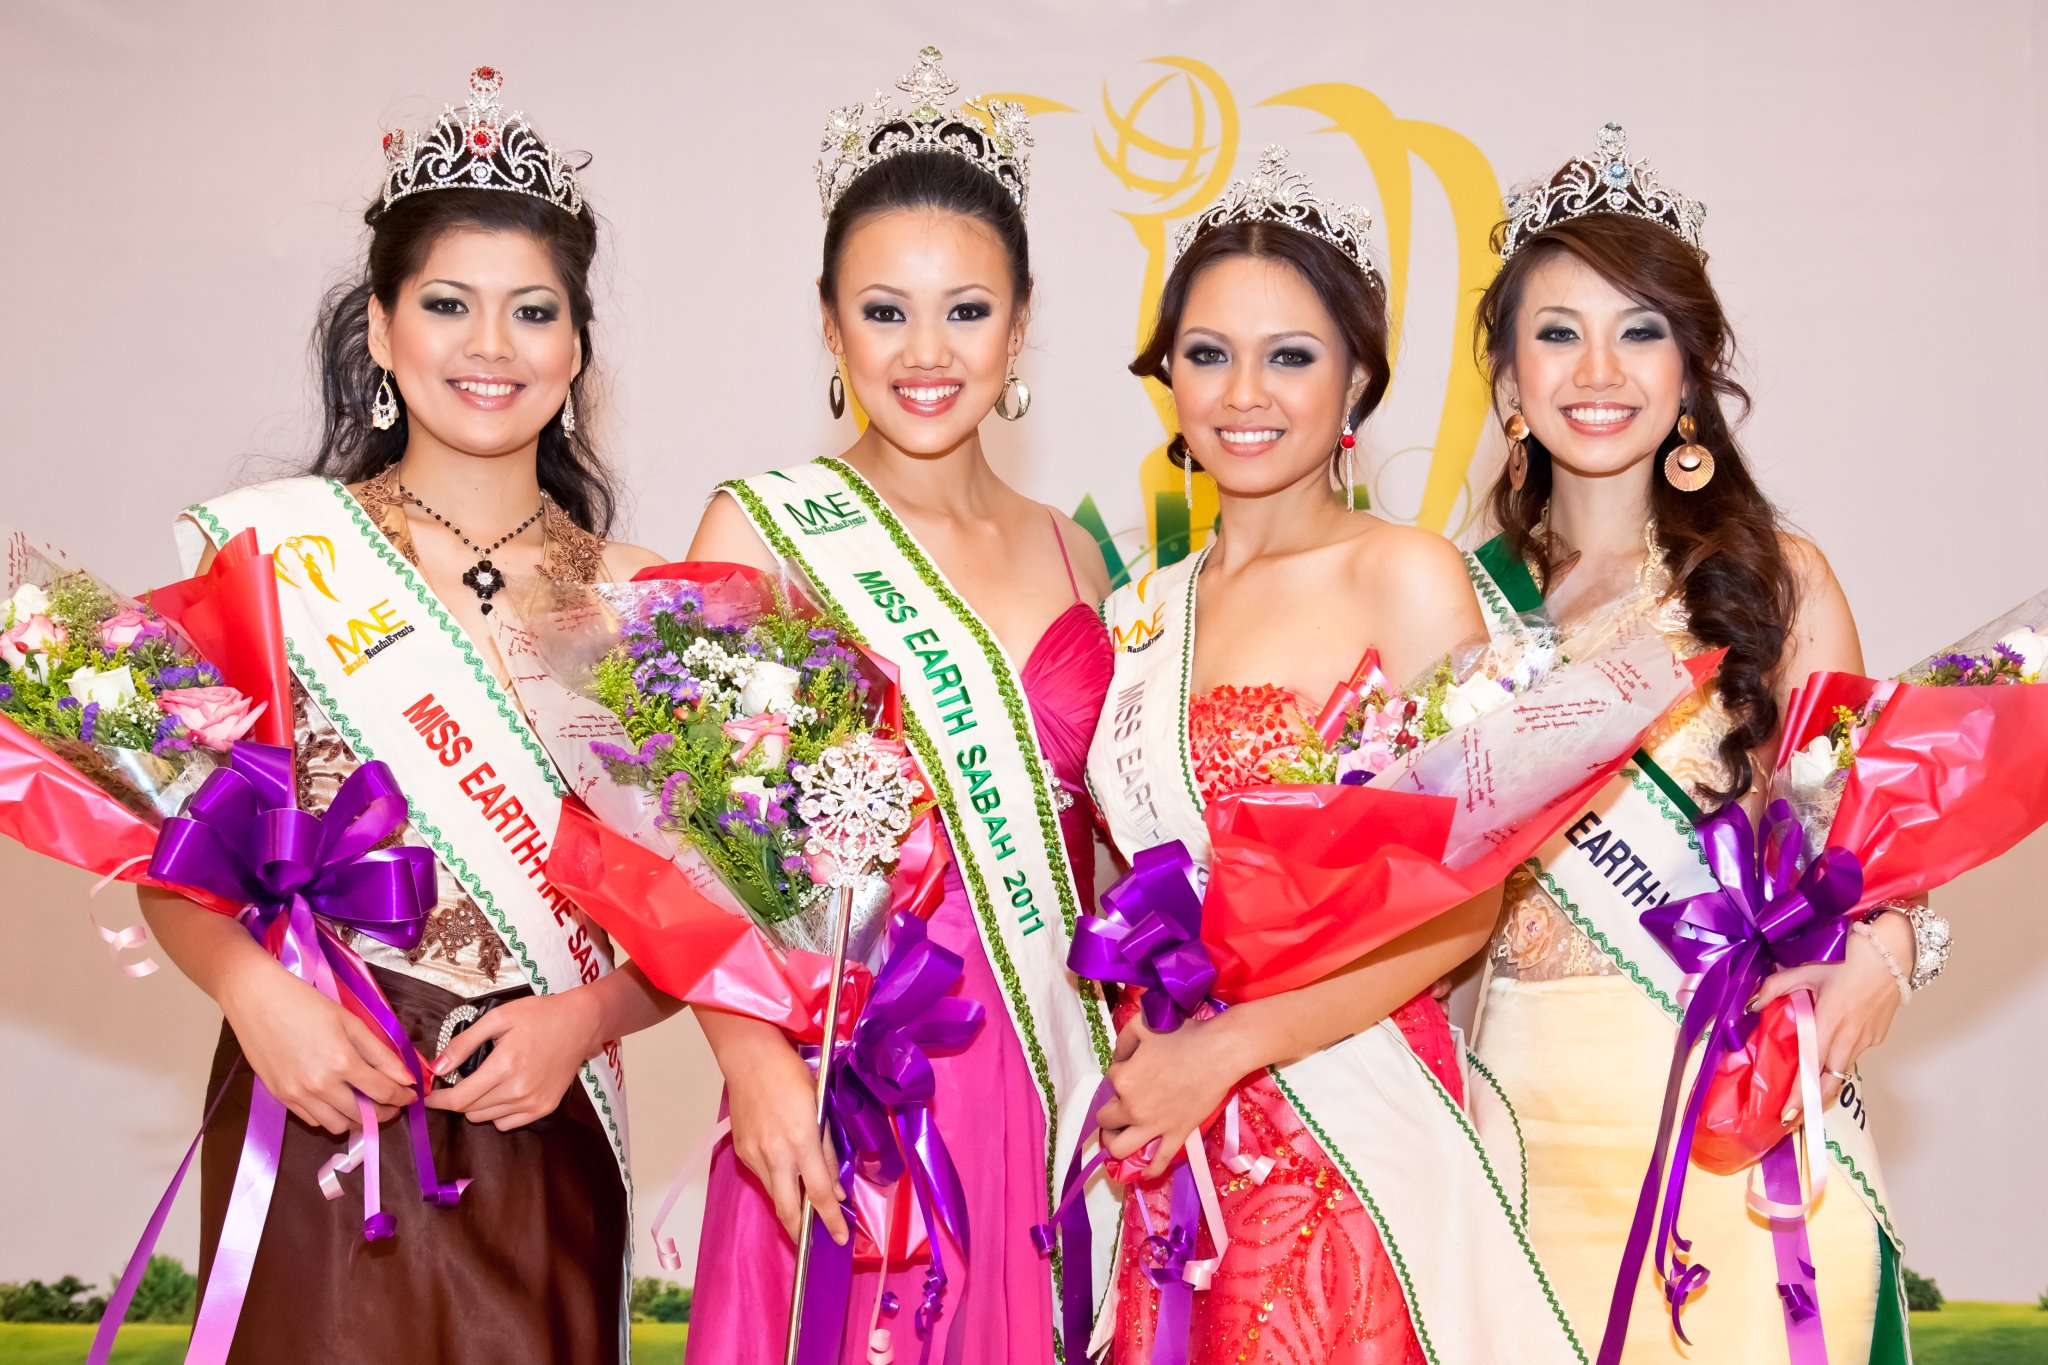 Top 4 winners of Miss Earth Sabah 2011 (from left) Venessa Samantha Maniwas (4th place), Olivia Vun Kai Li (Miss Earth Sabah 2011 winner), Kieren Laurent Simon (1st runner up), Crystel Eve Huminodun Majinbon (3rd place)